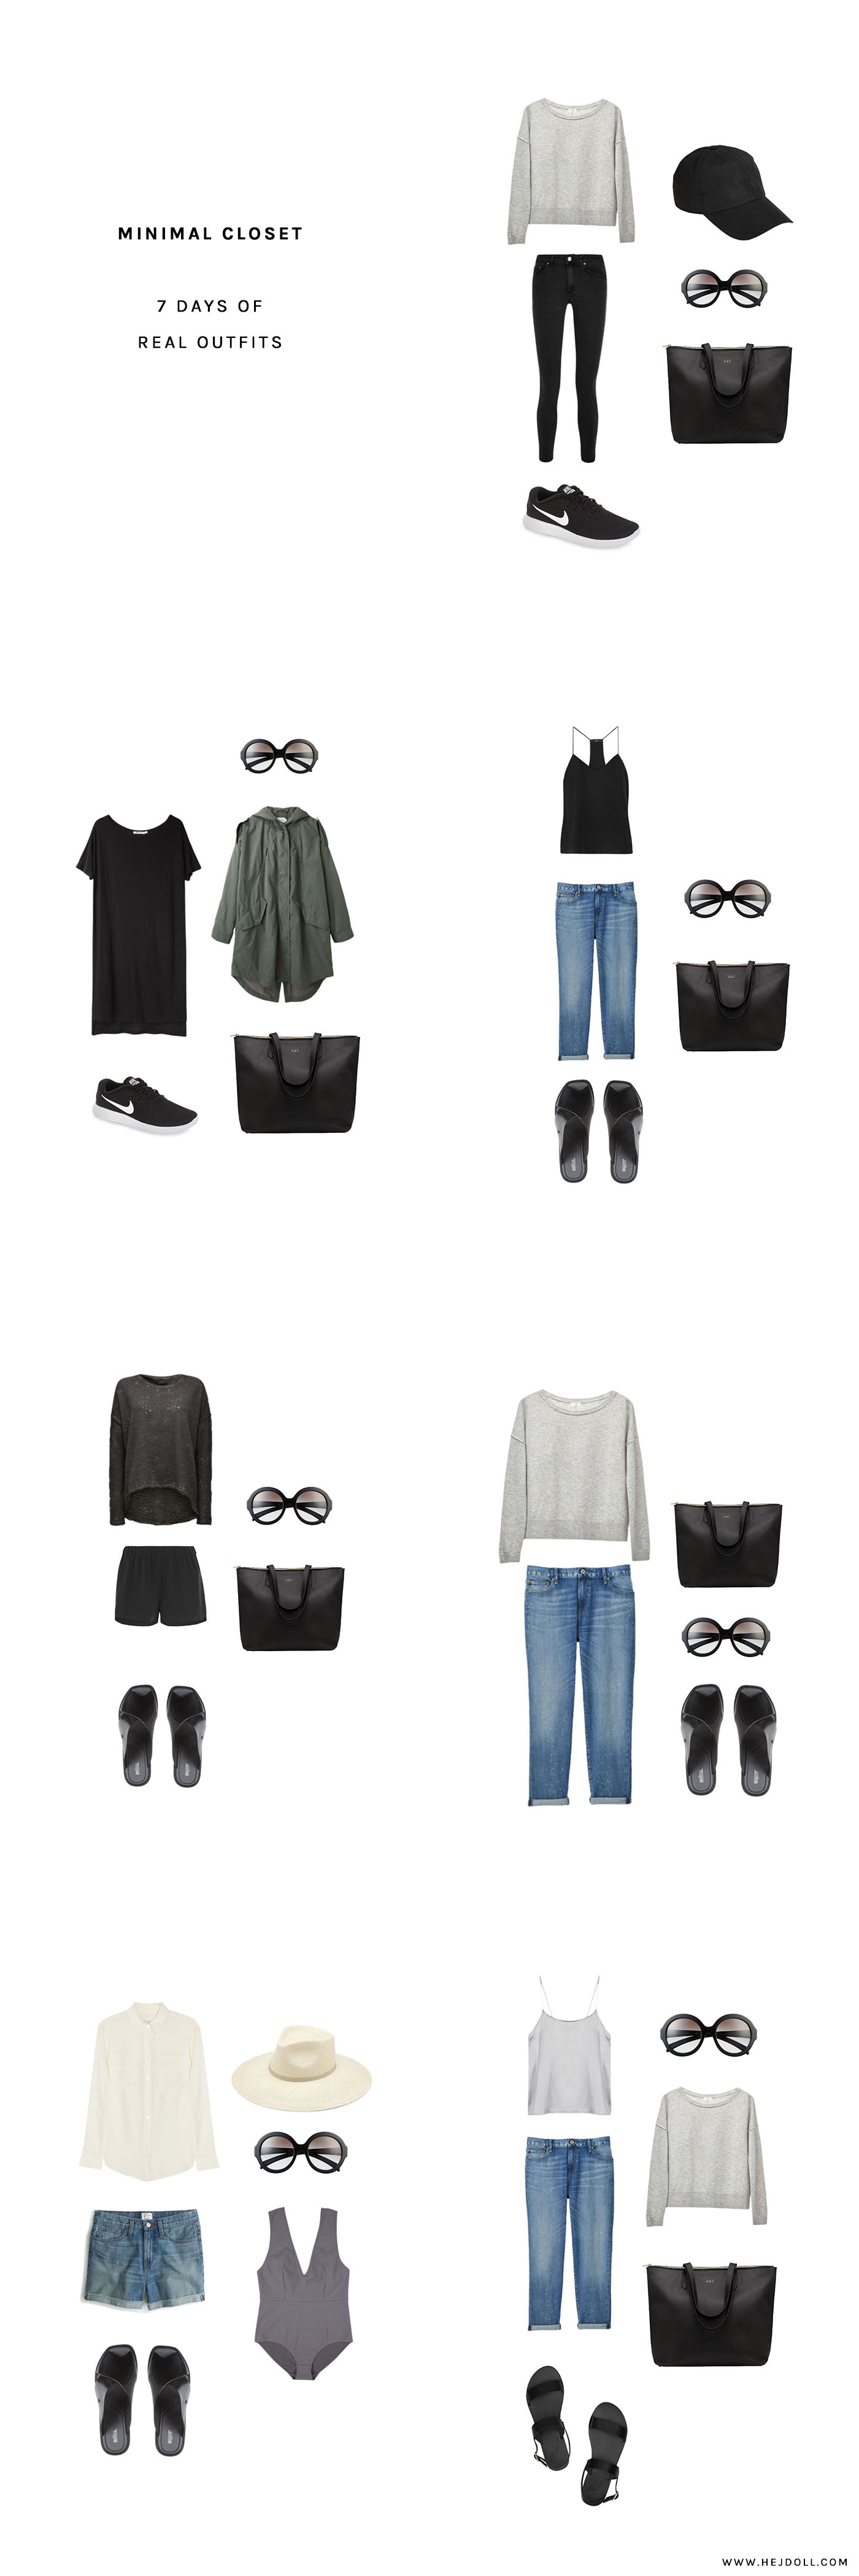 My Minimal Closet - 7 Days of Real Life Outfits